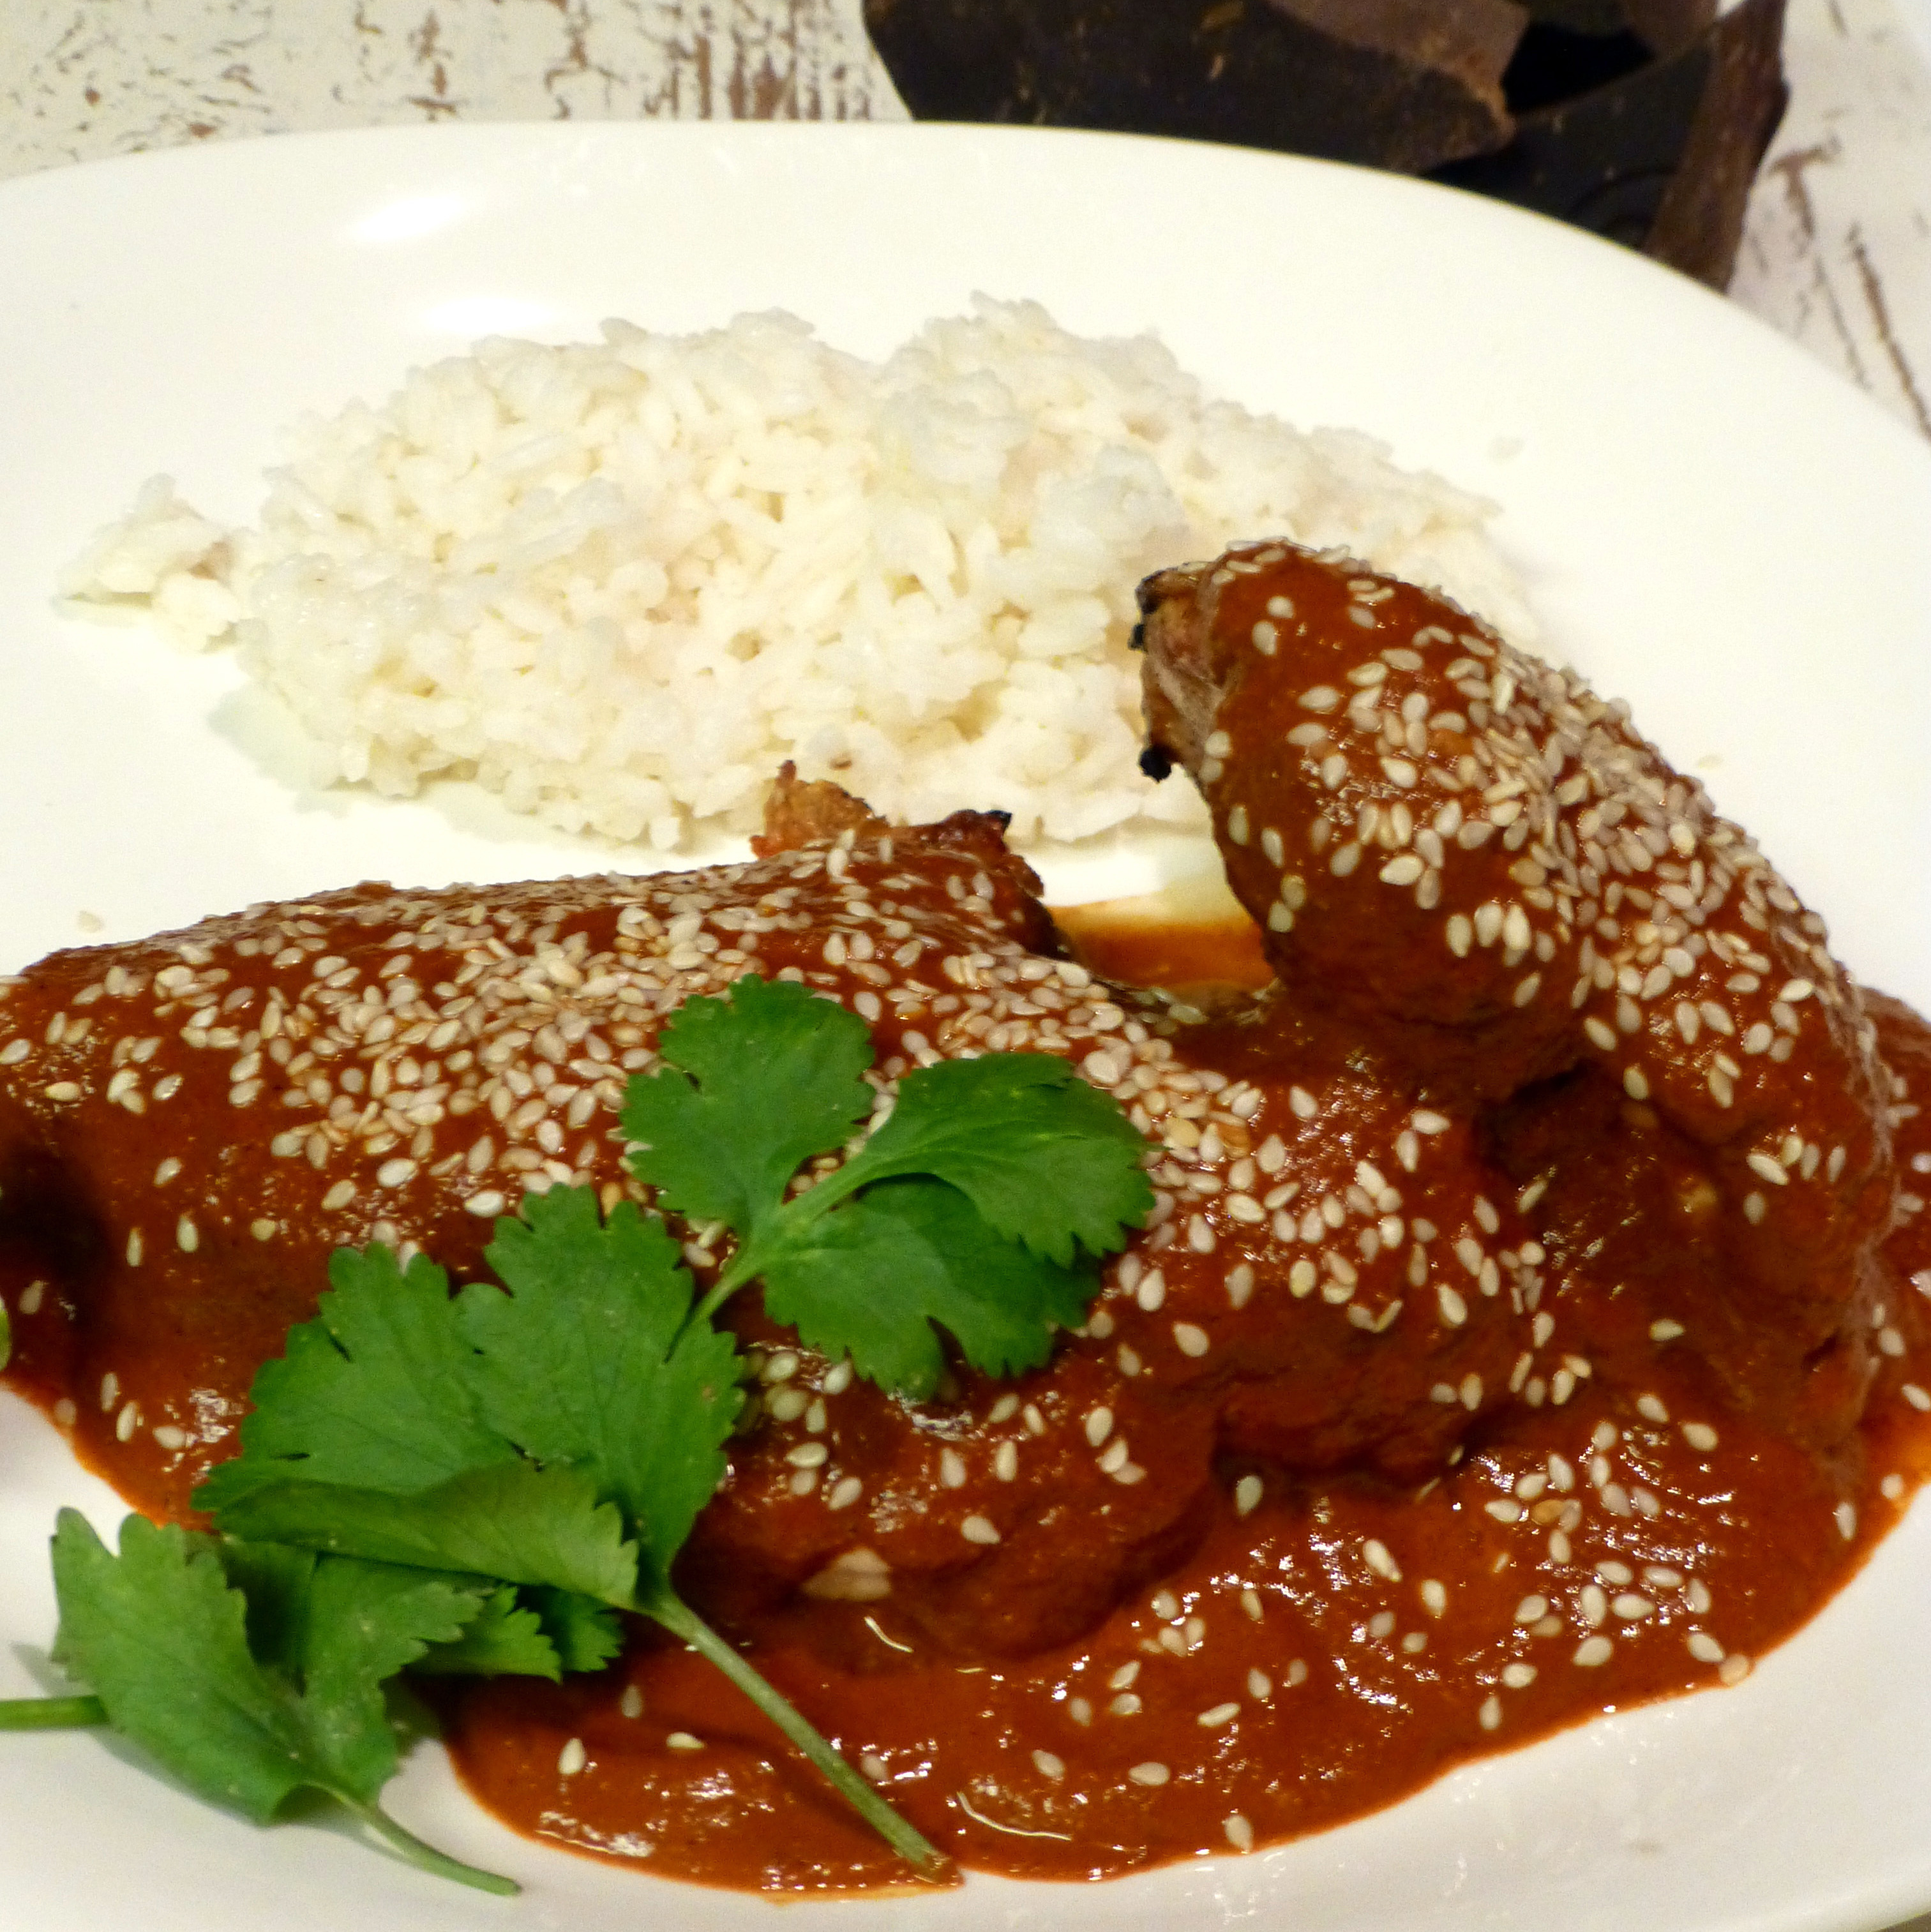 Here, Chocolate Mole is served over grilled chicken. But it's also commonly paired with pork